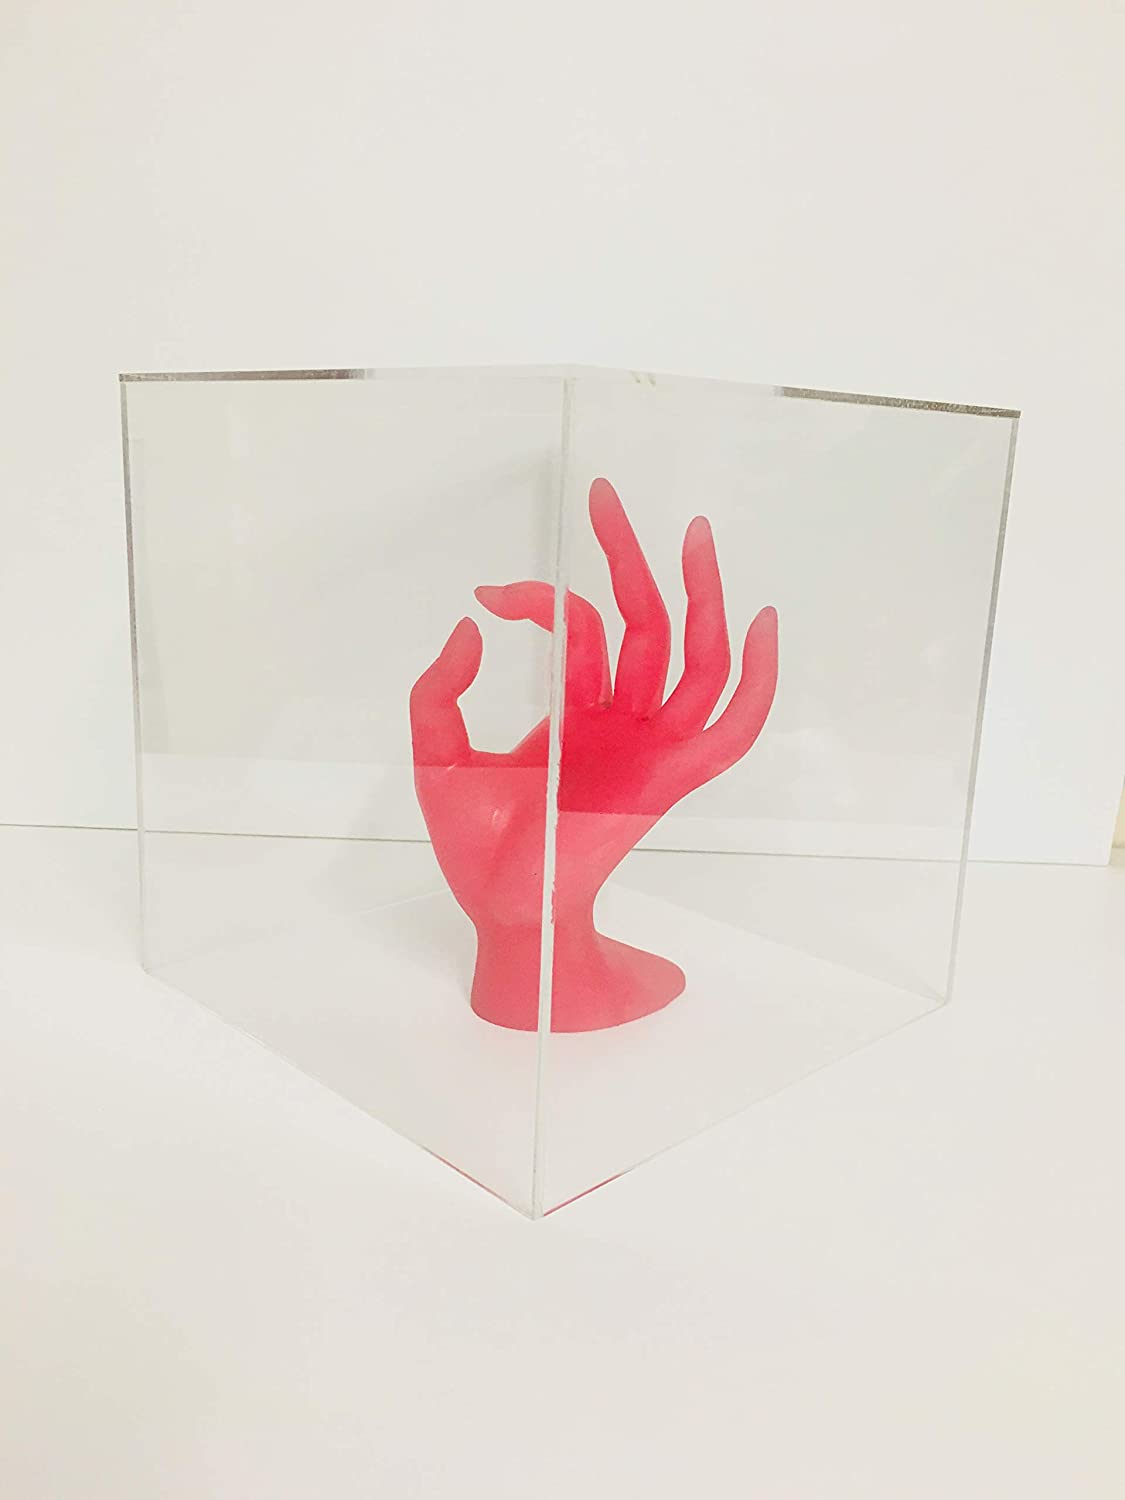 Acrylic 5 Sided Box Cube Display Stand 300 x 300 x 300 Counter Top Display.